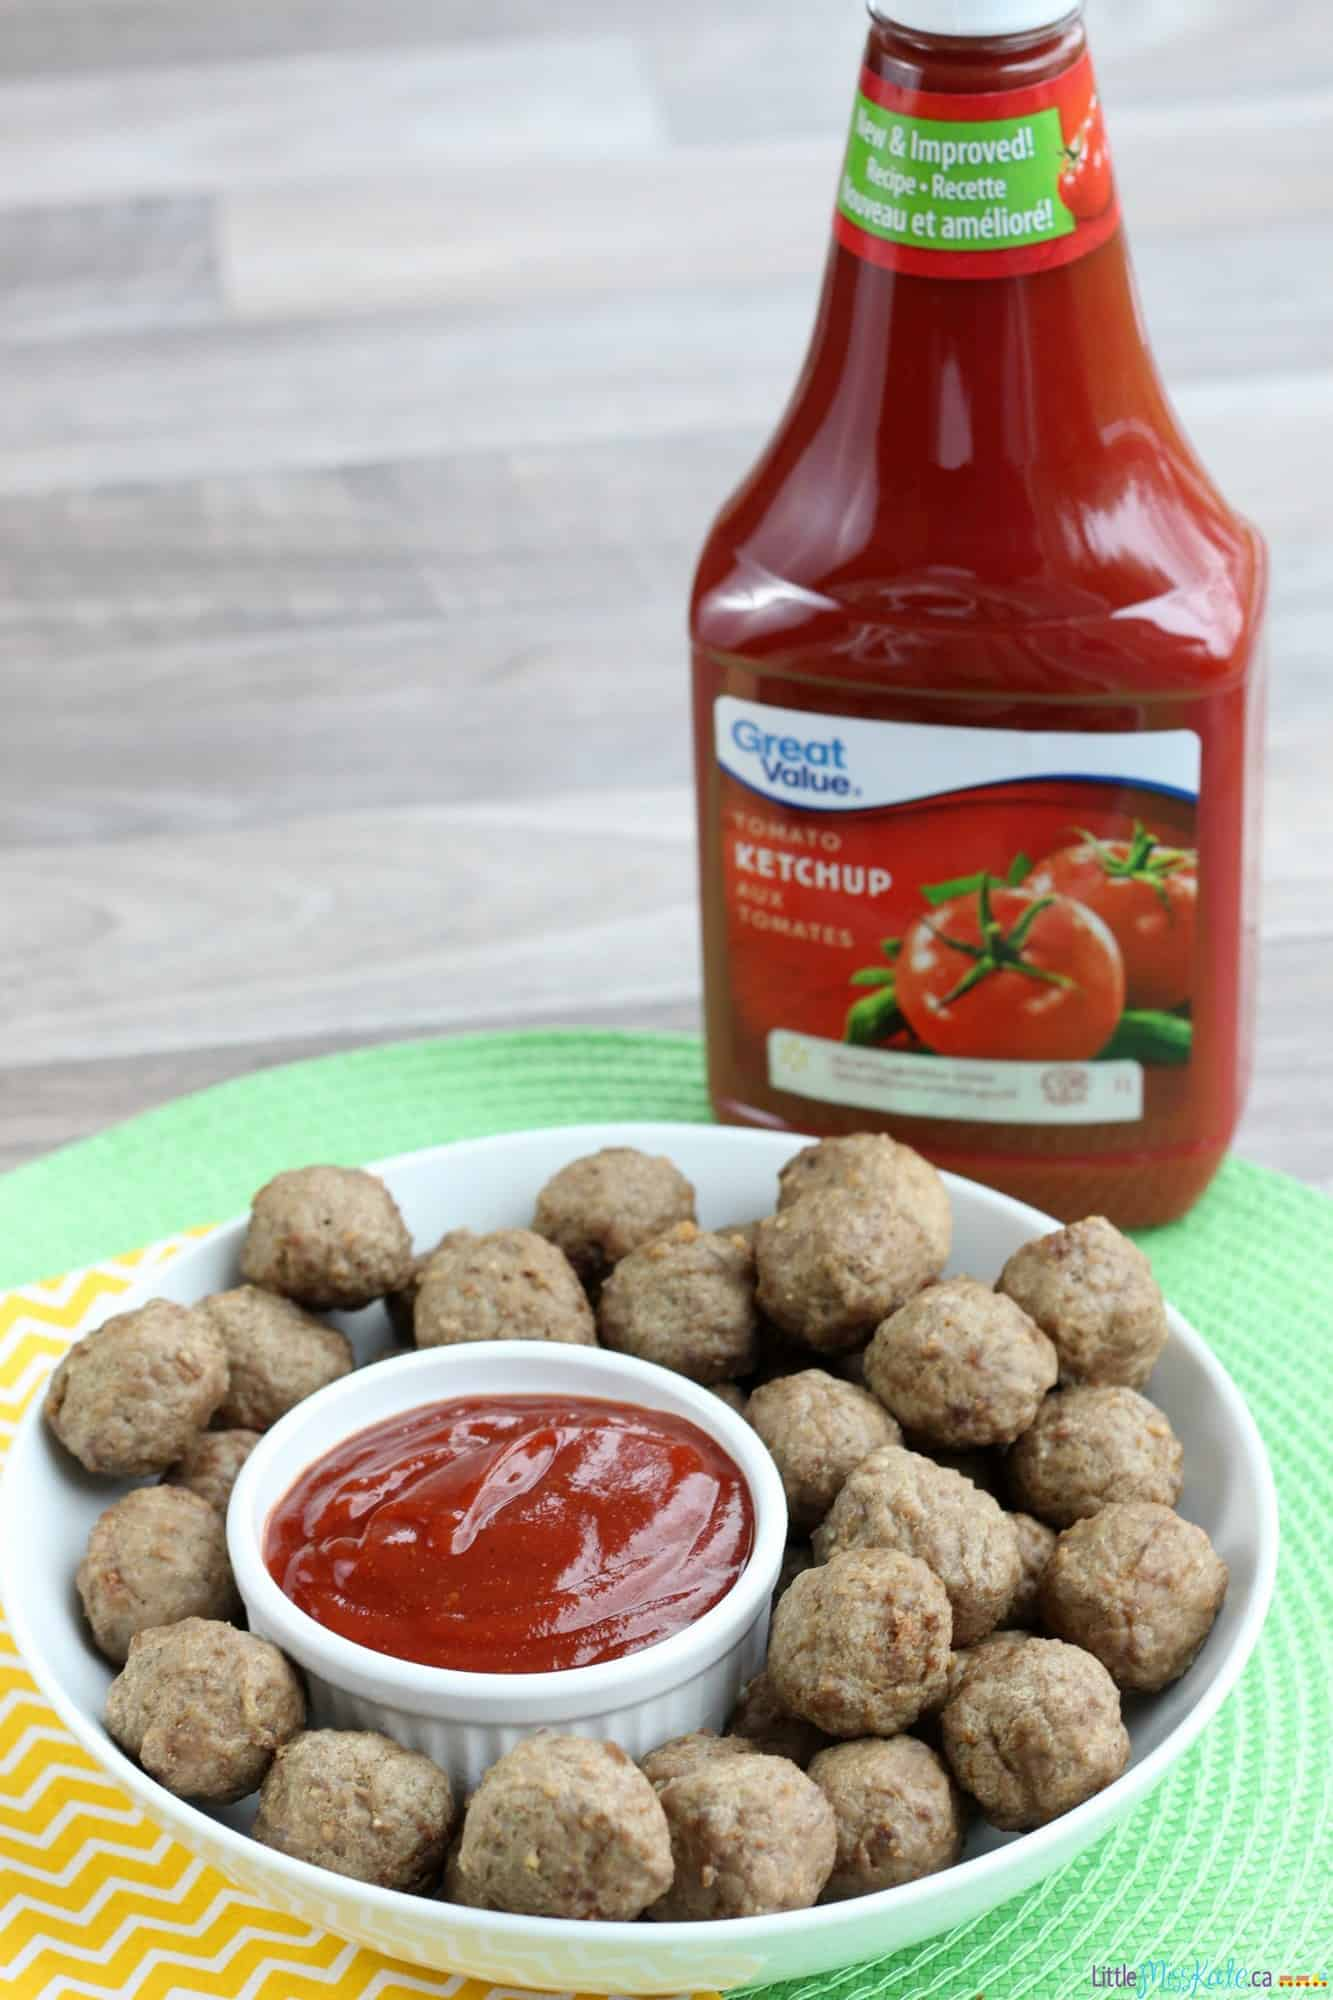 Quebec Inspired Dip with Cocktail Meatballs Recipe